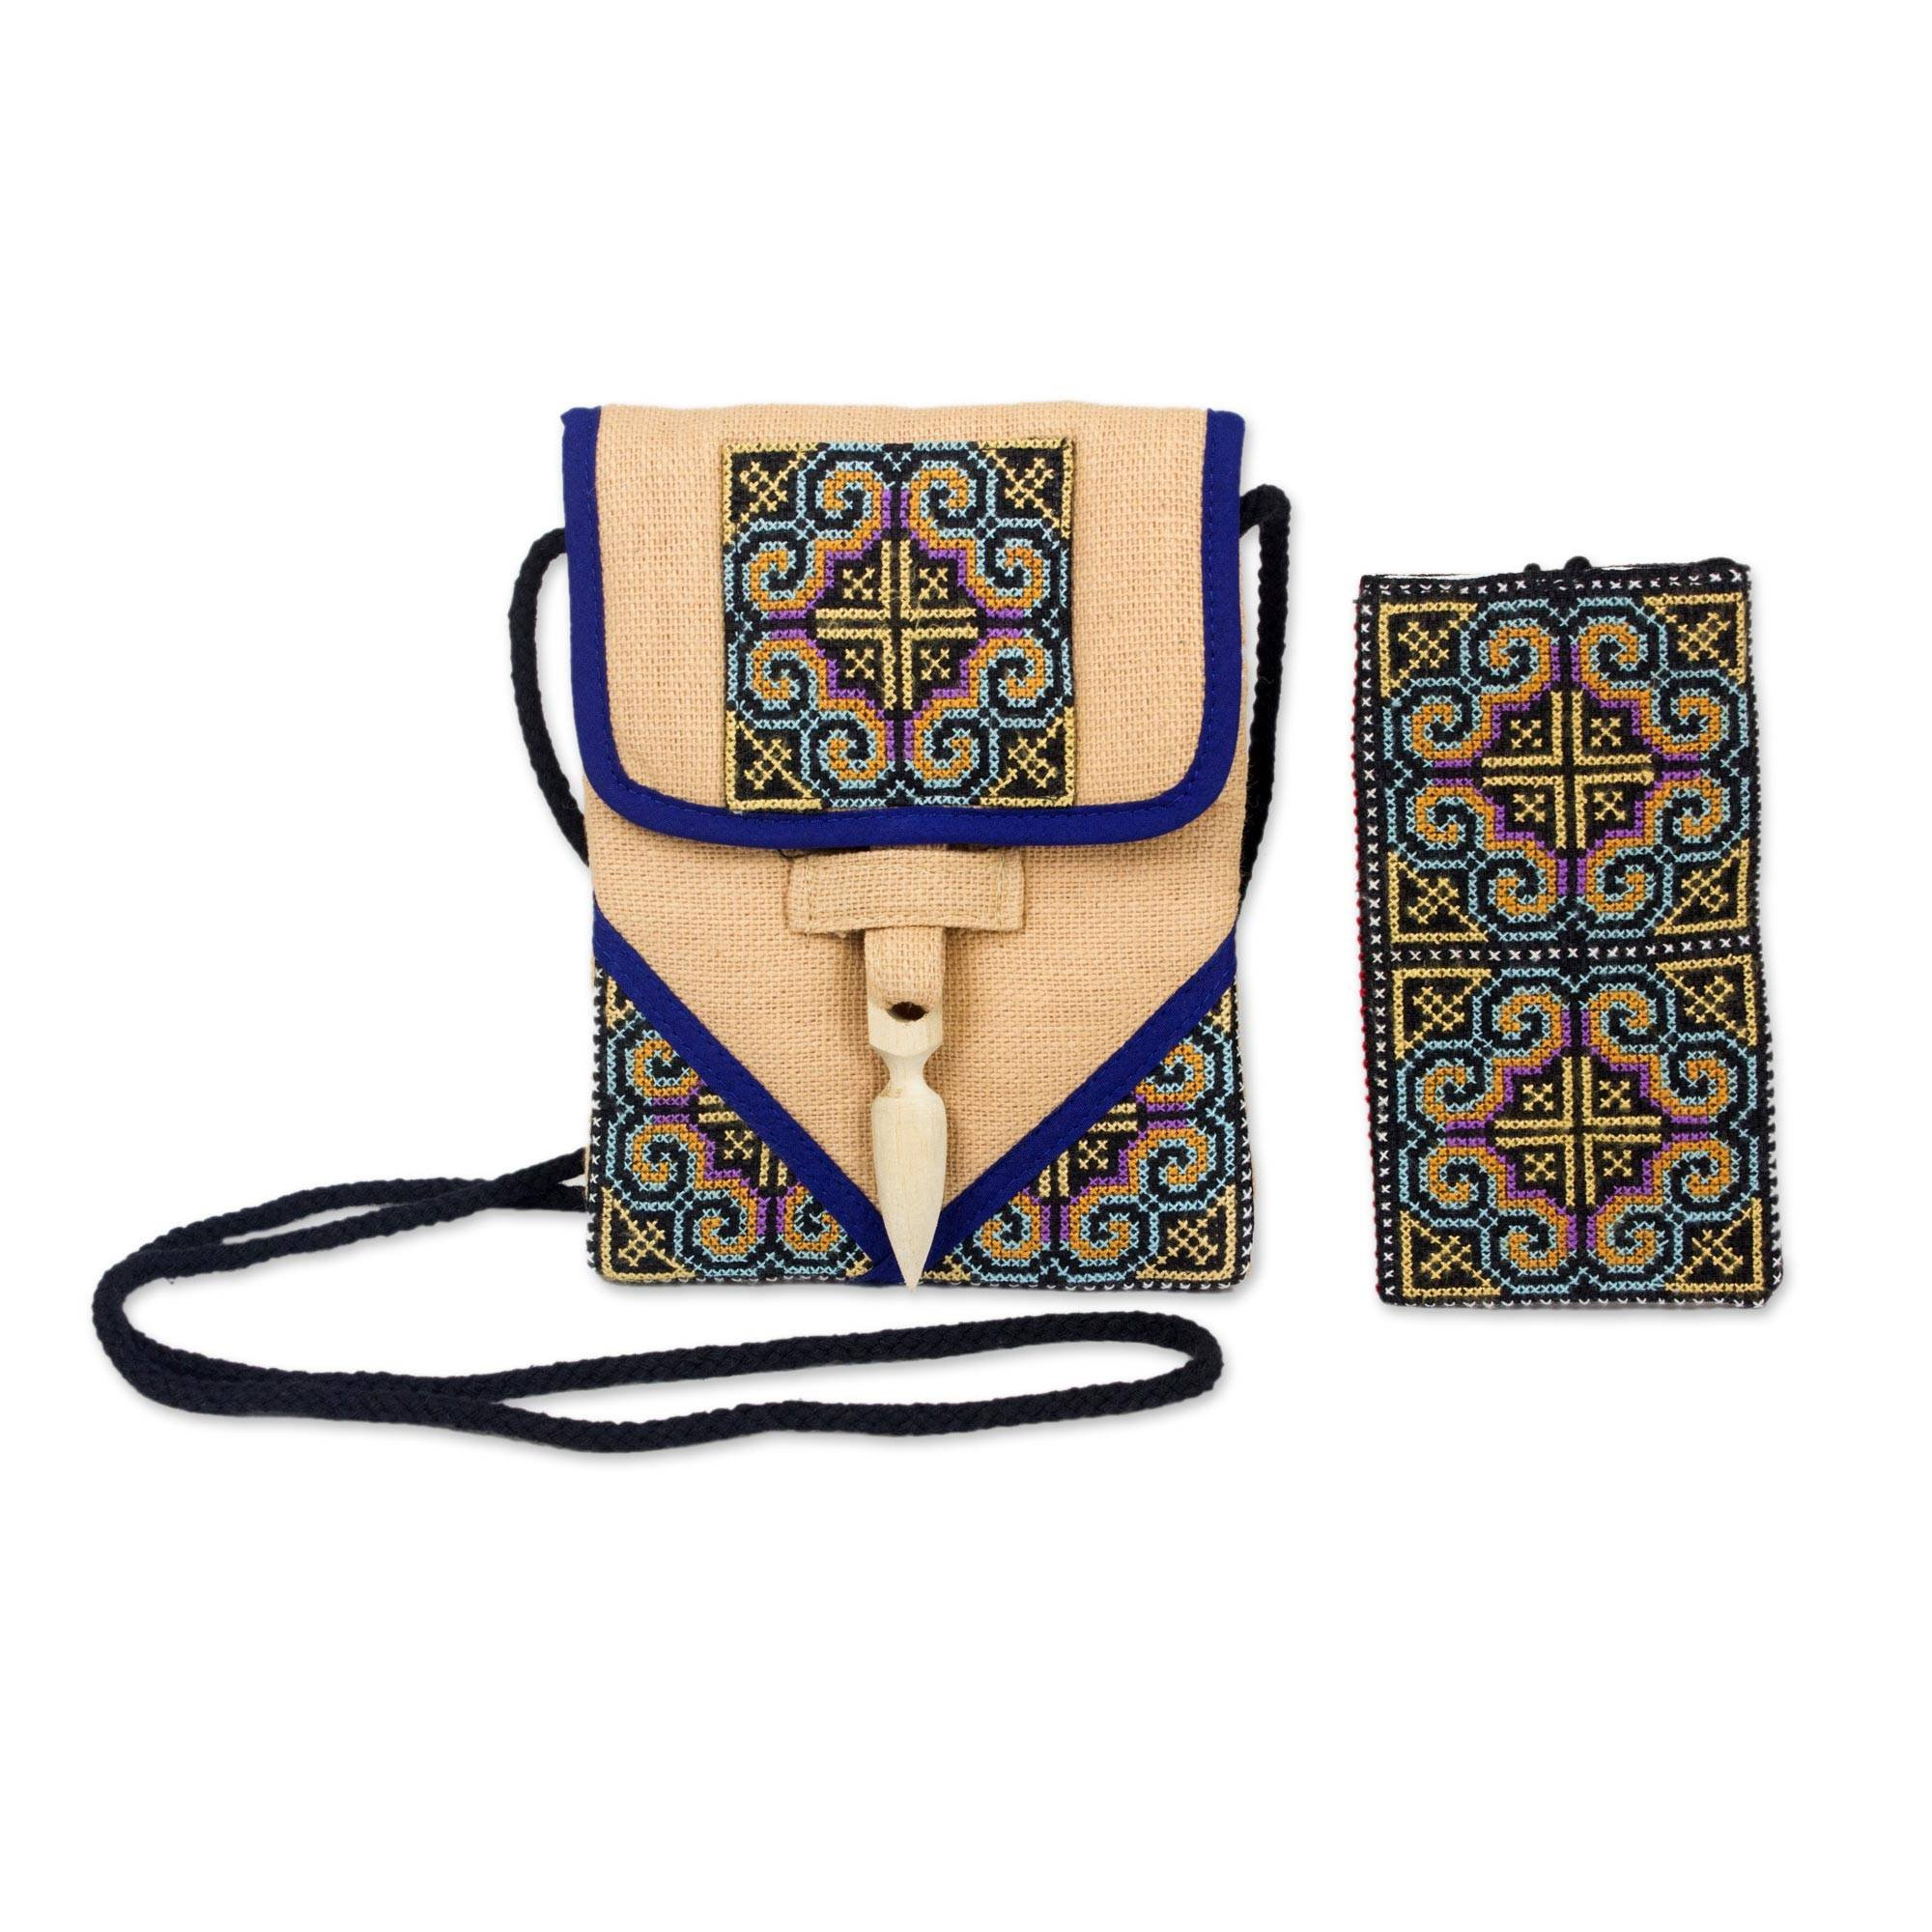 NOVICA Beige Hemp Purse and Phone Pouch, 'Ultimate Blue' by NOVICA